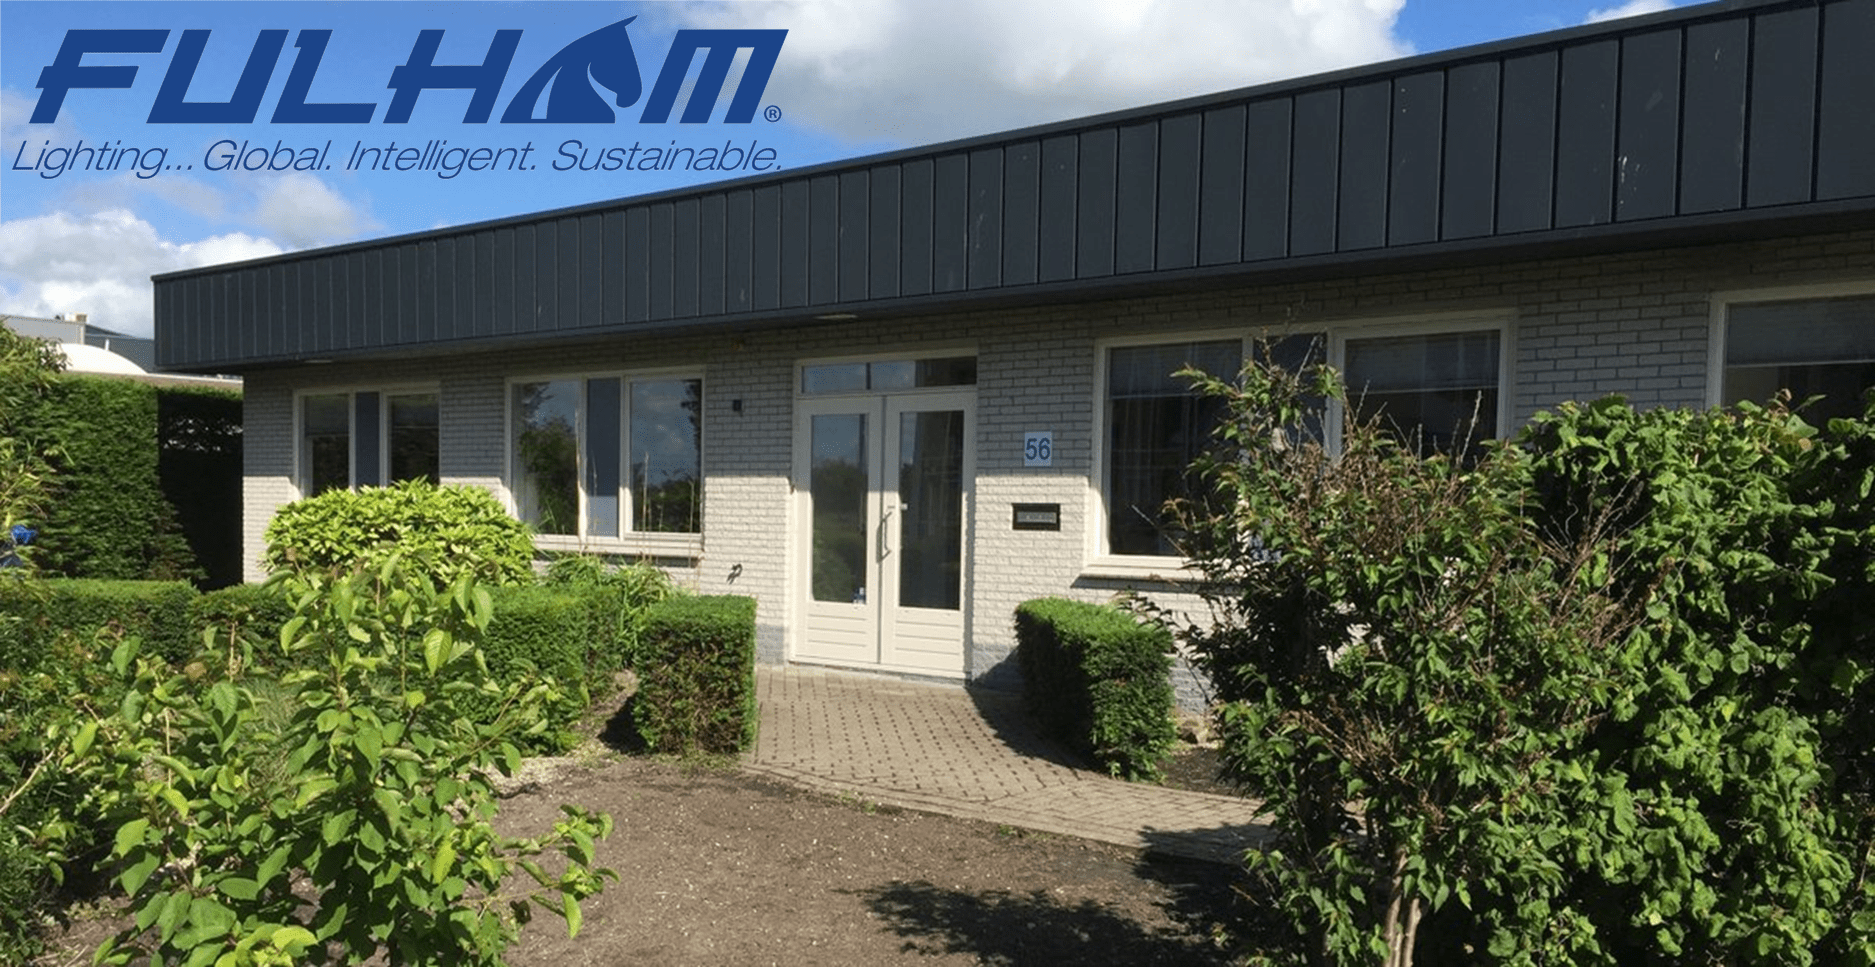 fulham opens european headquarters in the netherlands nfia